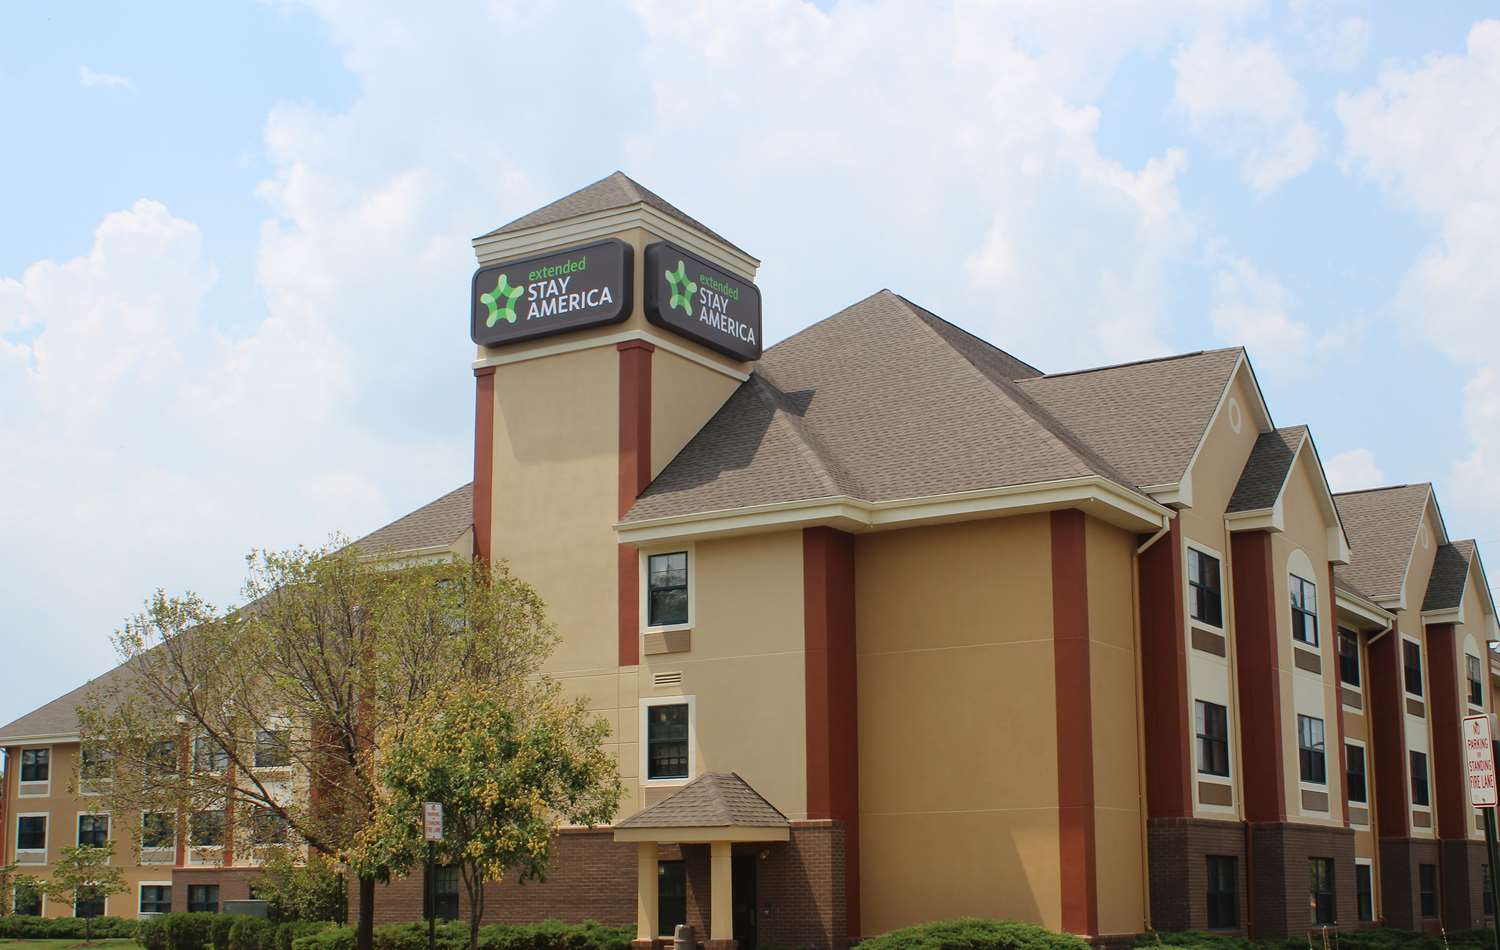 Extended Stay America Hotel Chantilly